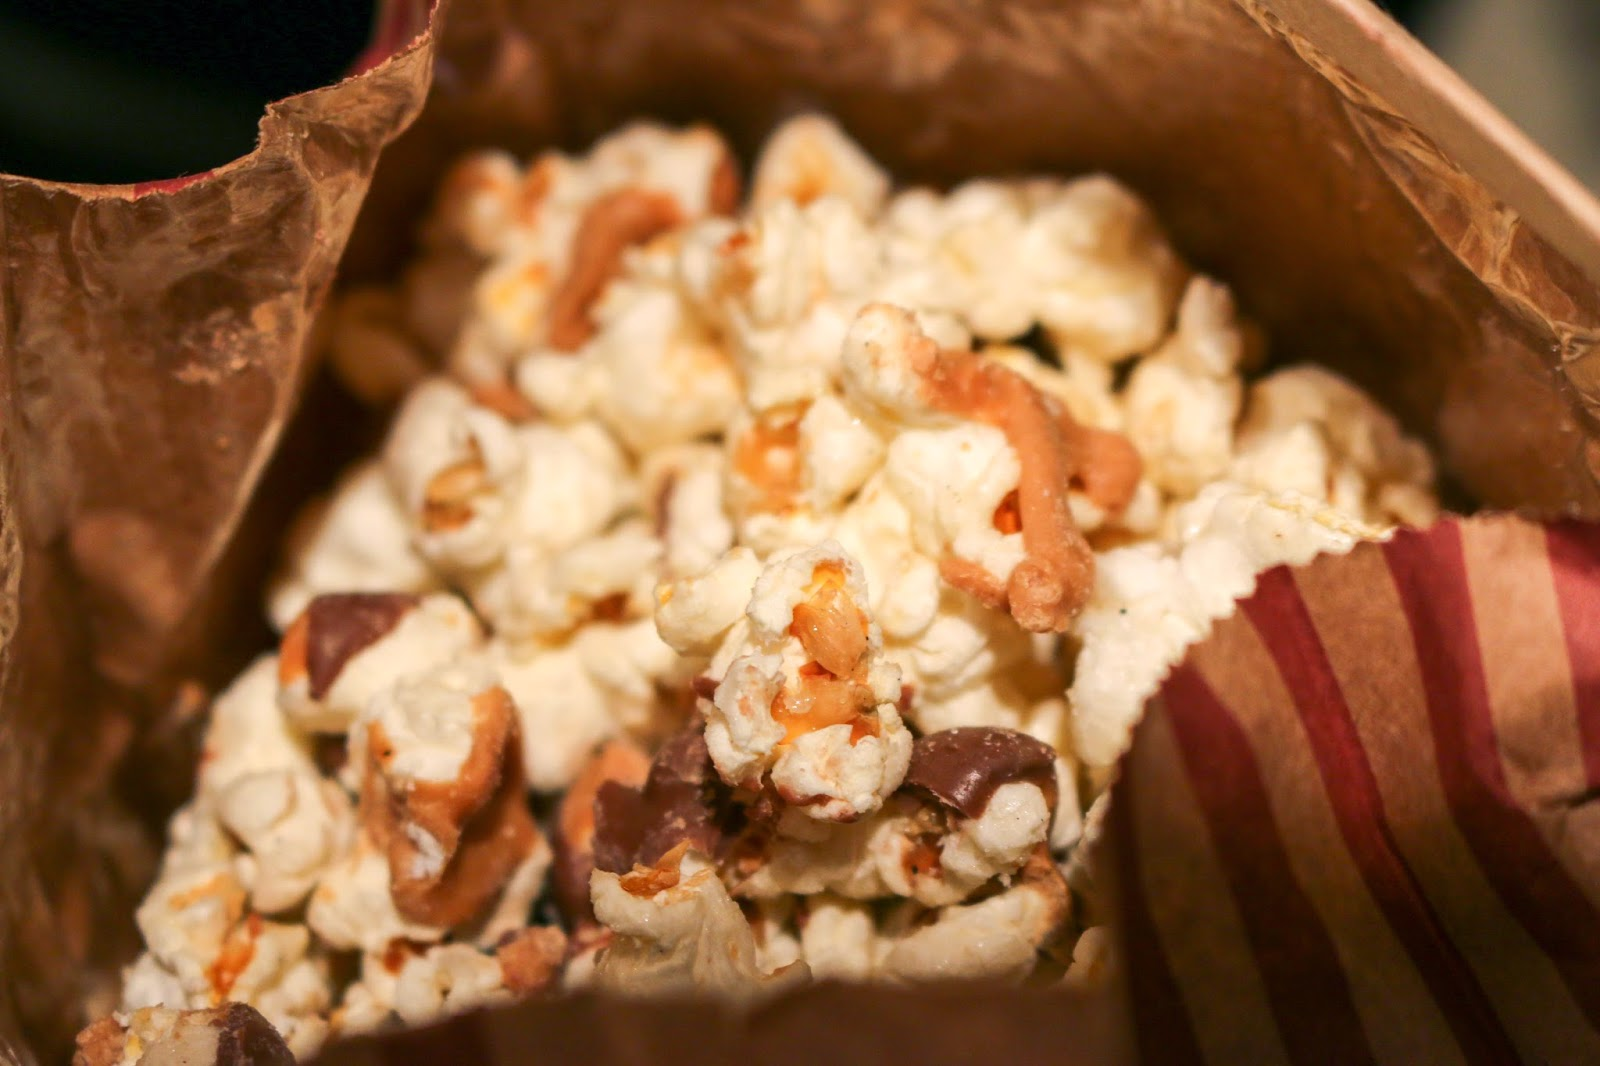 Philly Food Blog: Go Popcorn Peanut Butter Cup Popcorn